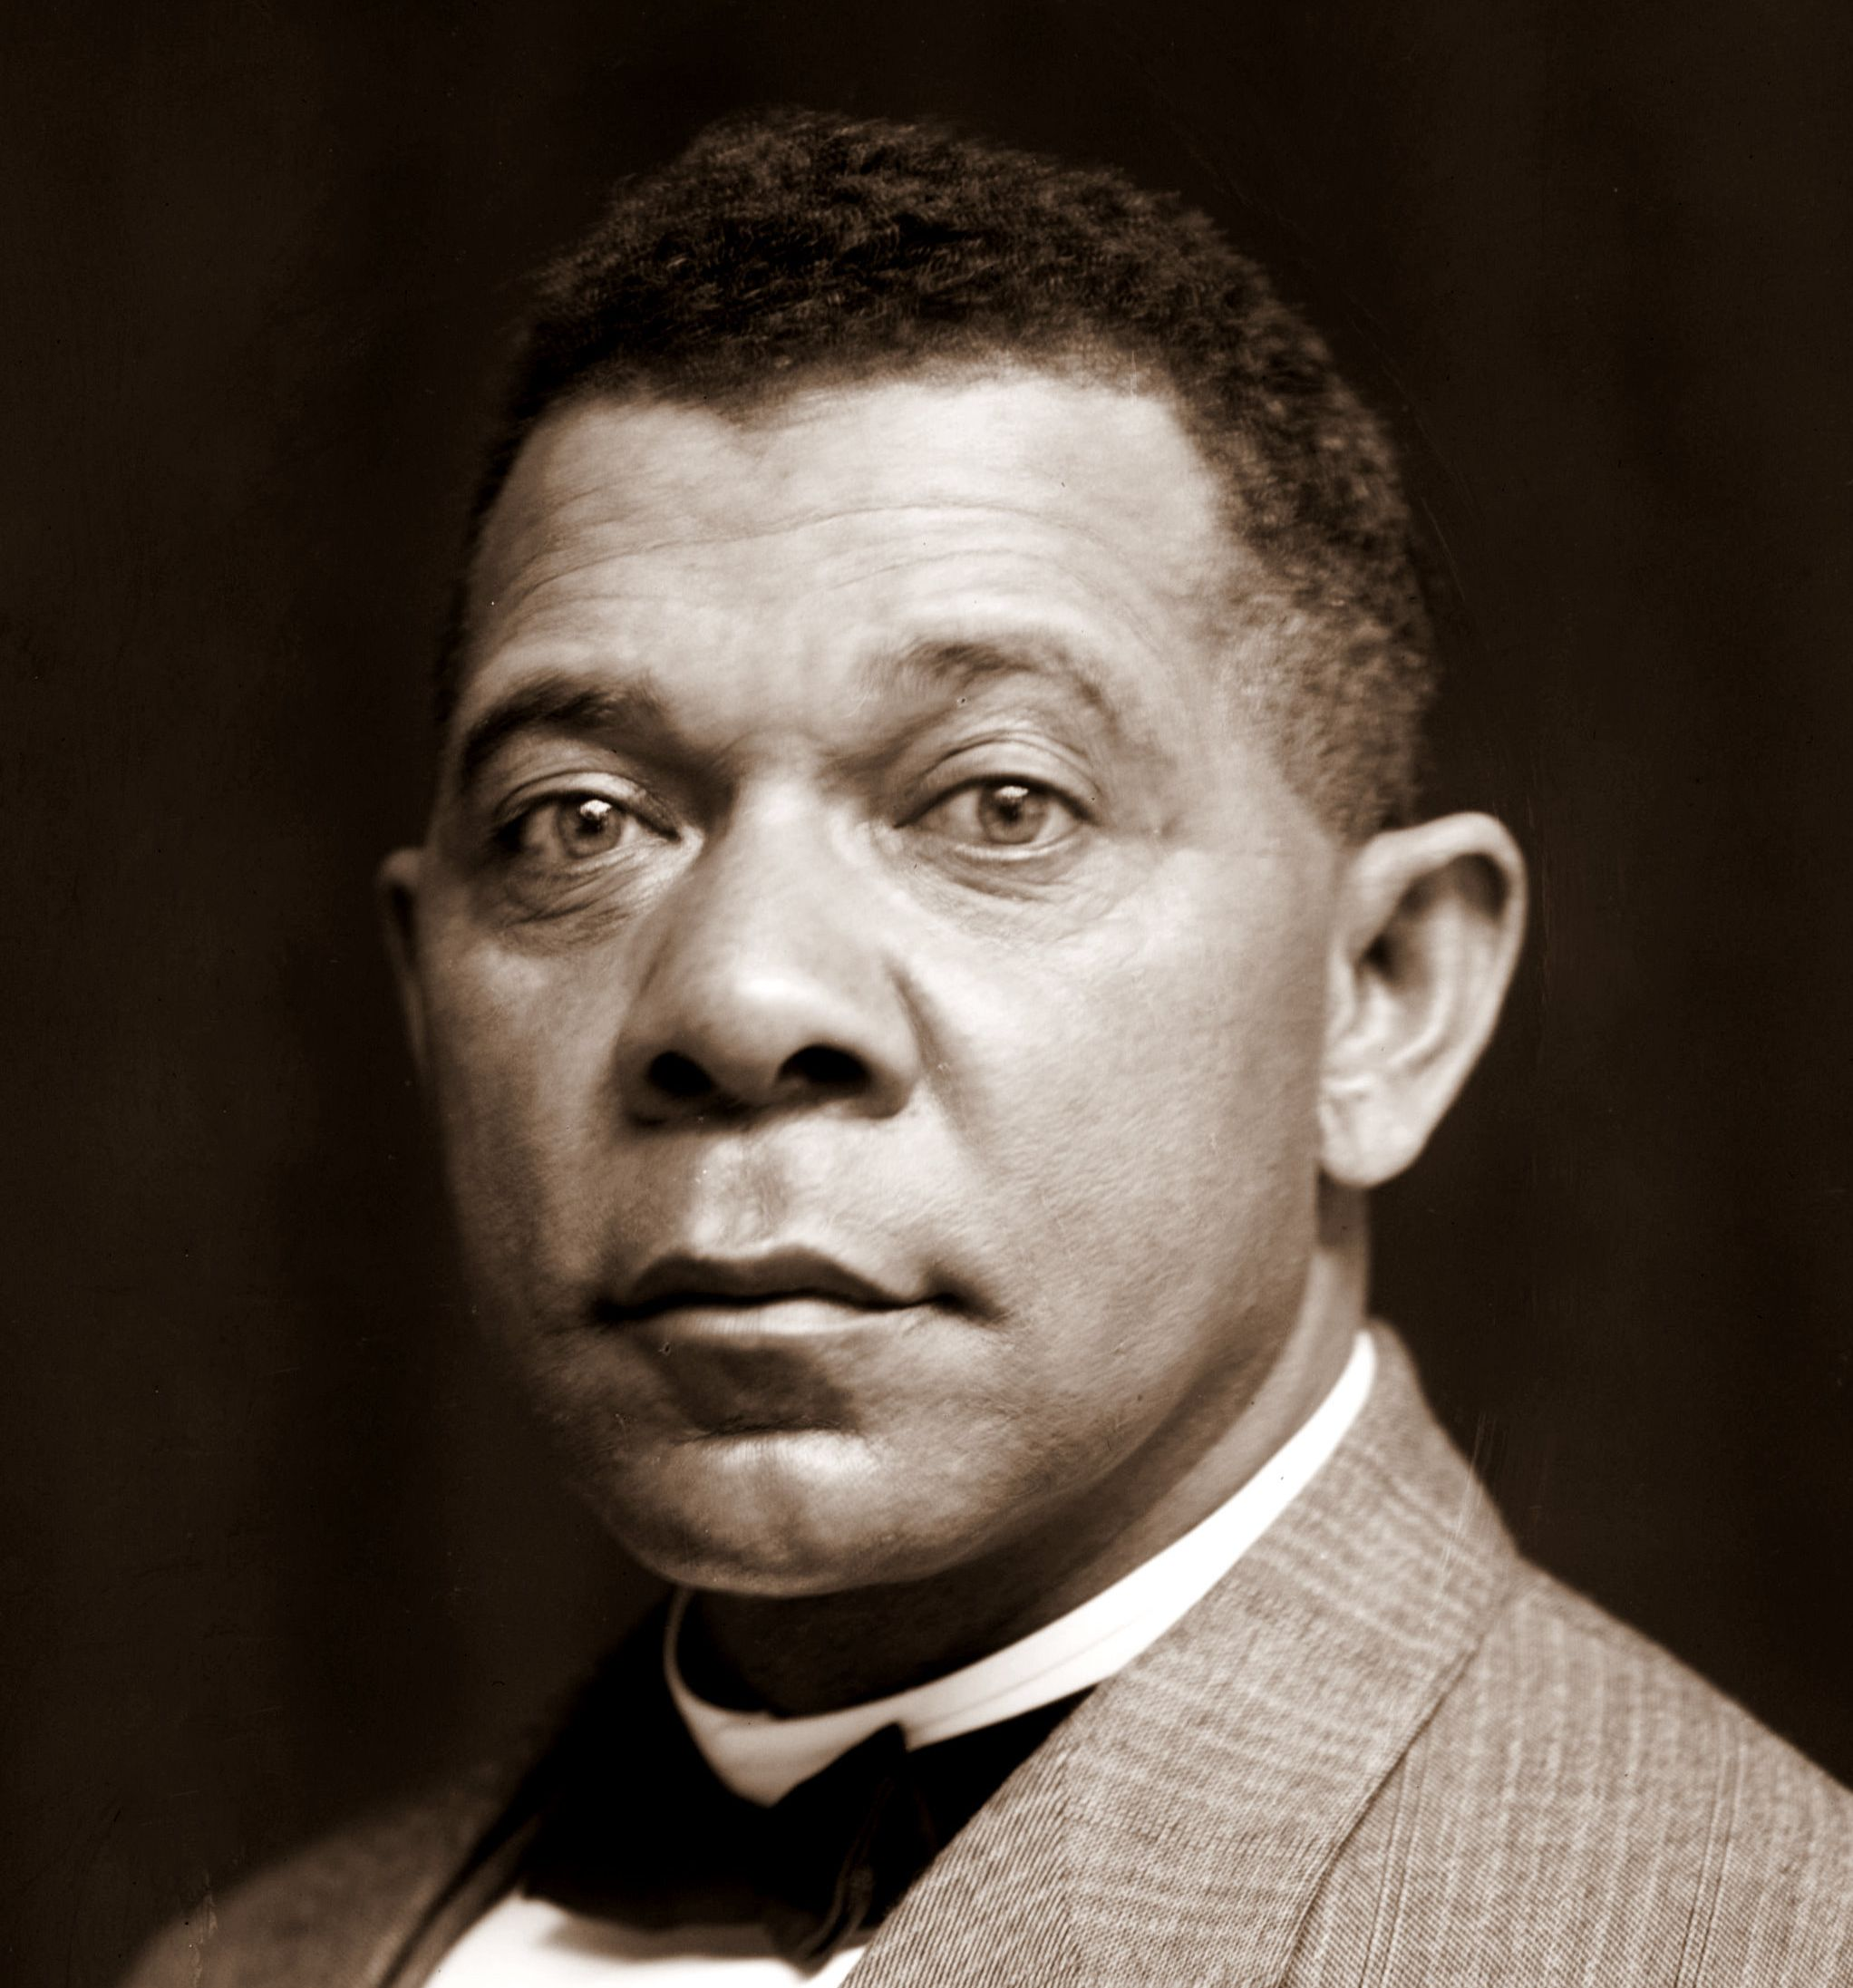 an analysis of southern prejudice from booker t washington and w e b dubois Civil rights, racism, - booker t washington vs web dubois, two different styles of african american leadership.